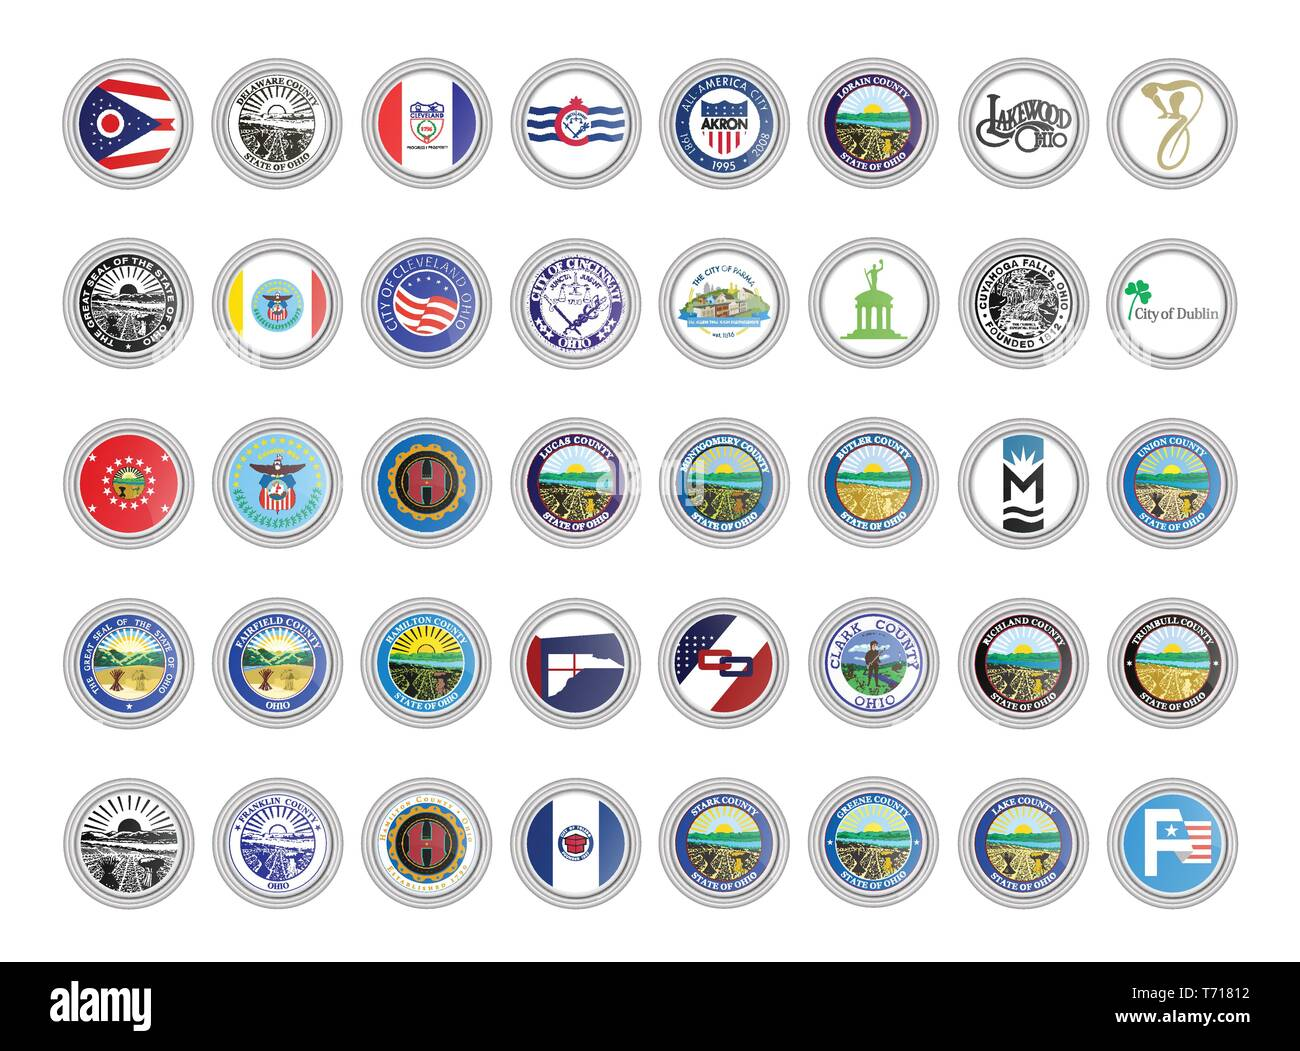 Set of vector icons. Flags and seals of Ohio state, USA. 3D illustration. - Stock Image